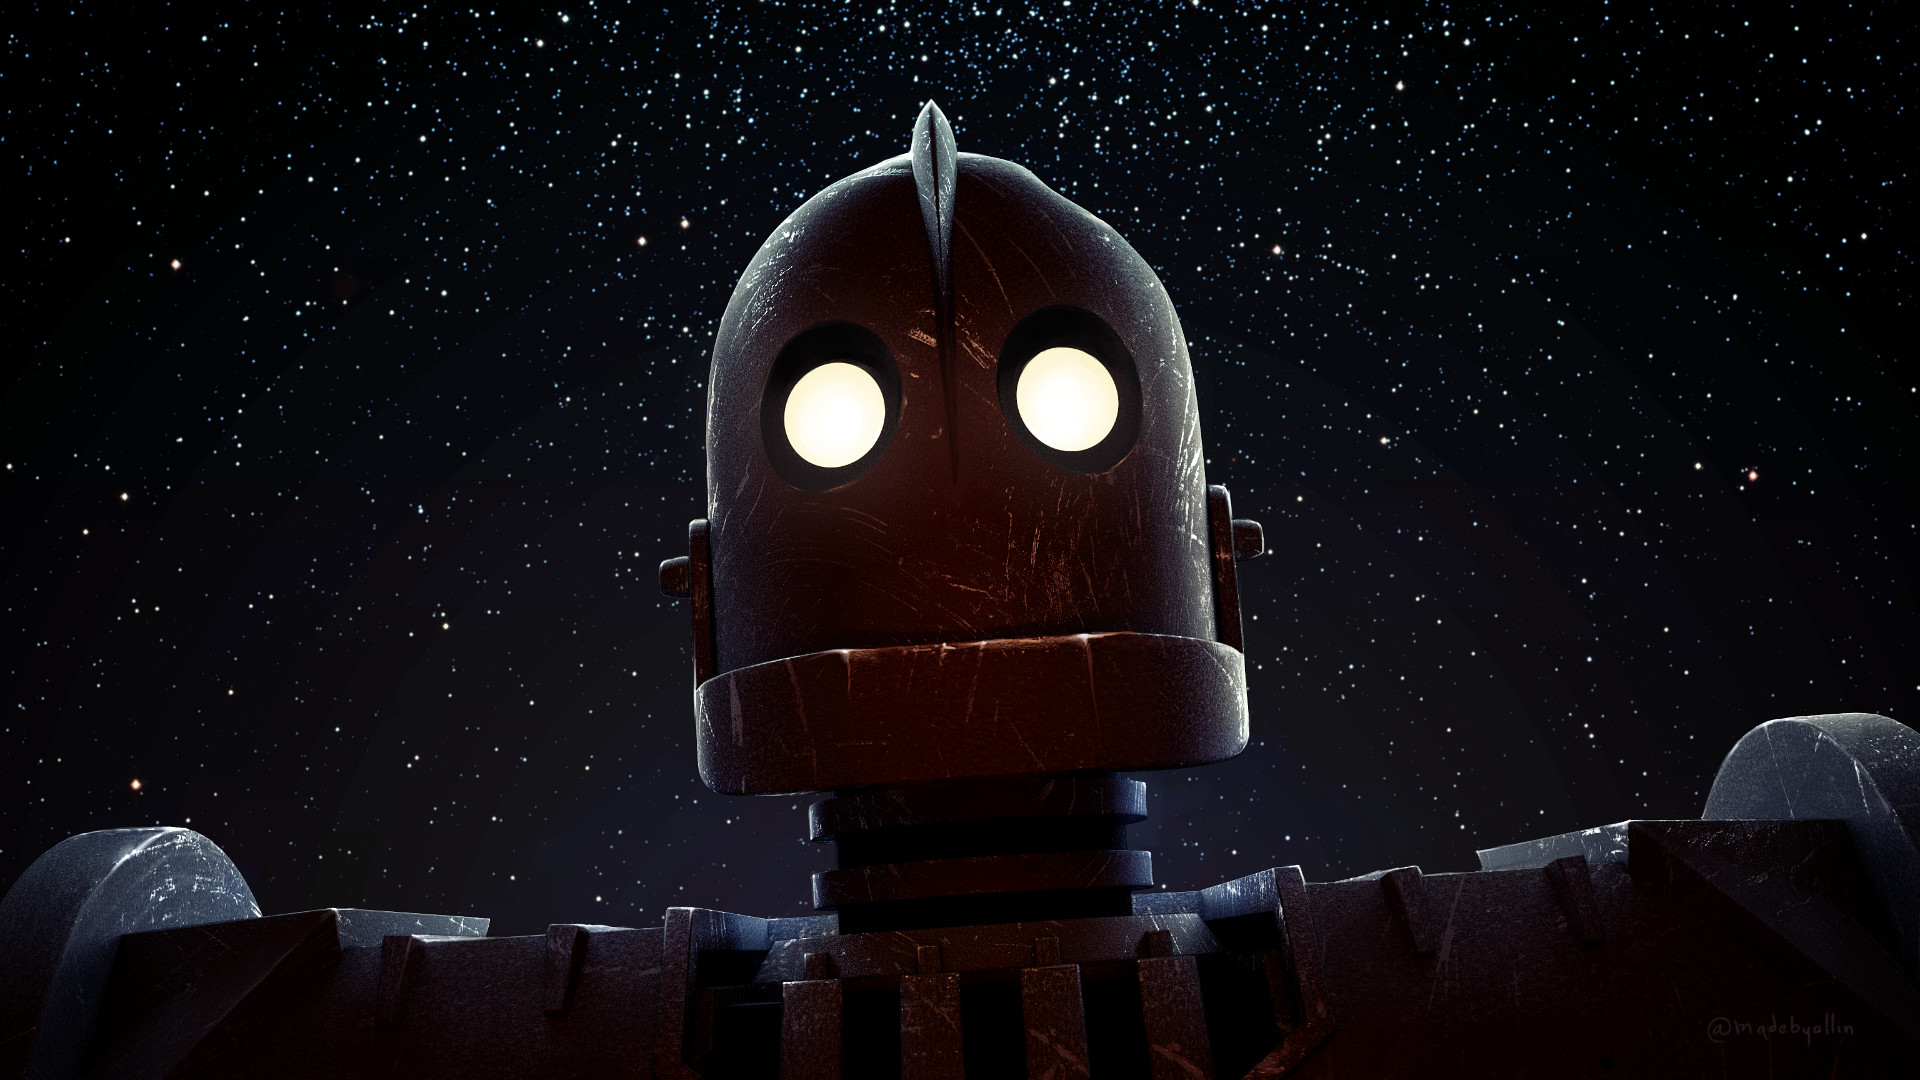 The Iron Giant [1920×1080] …